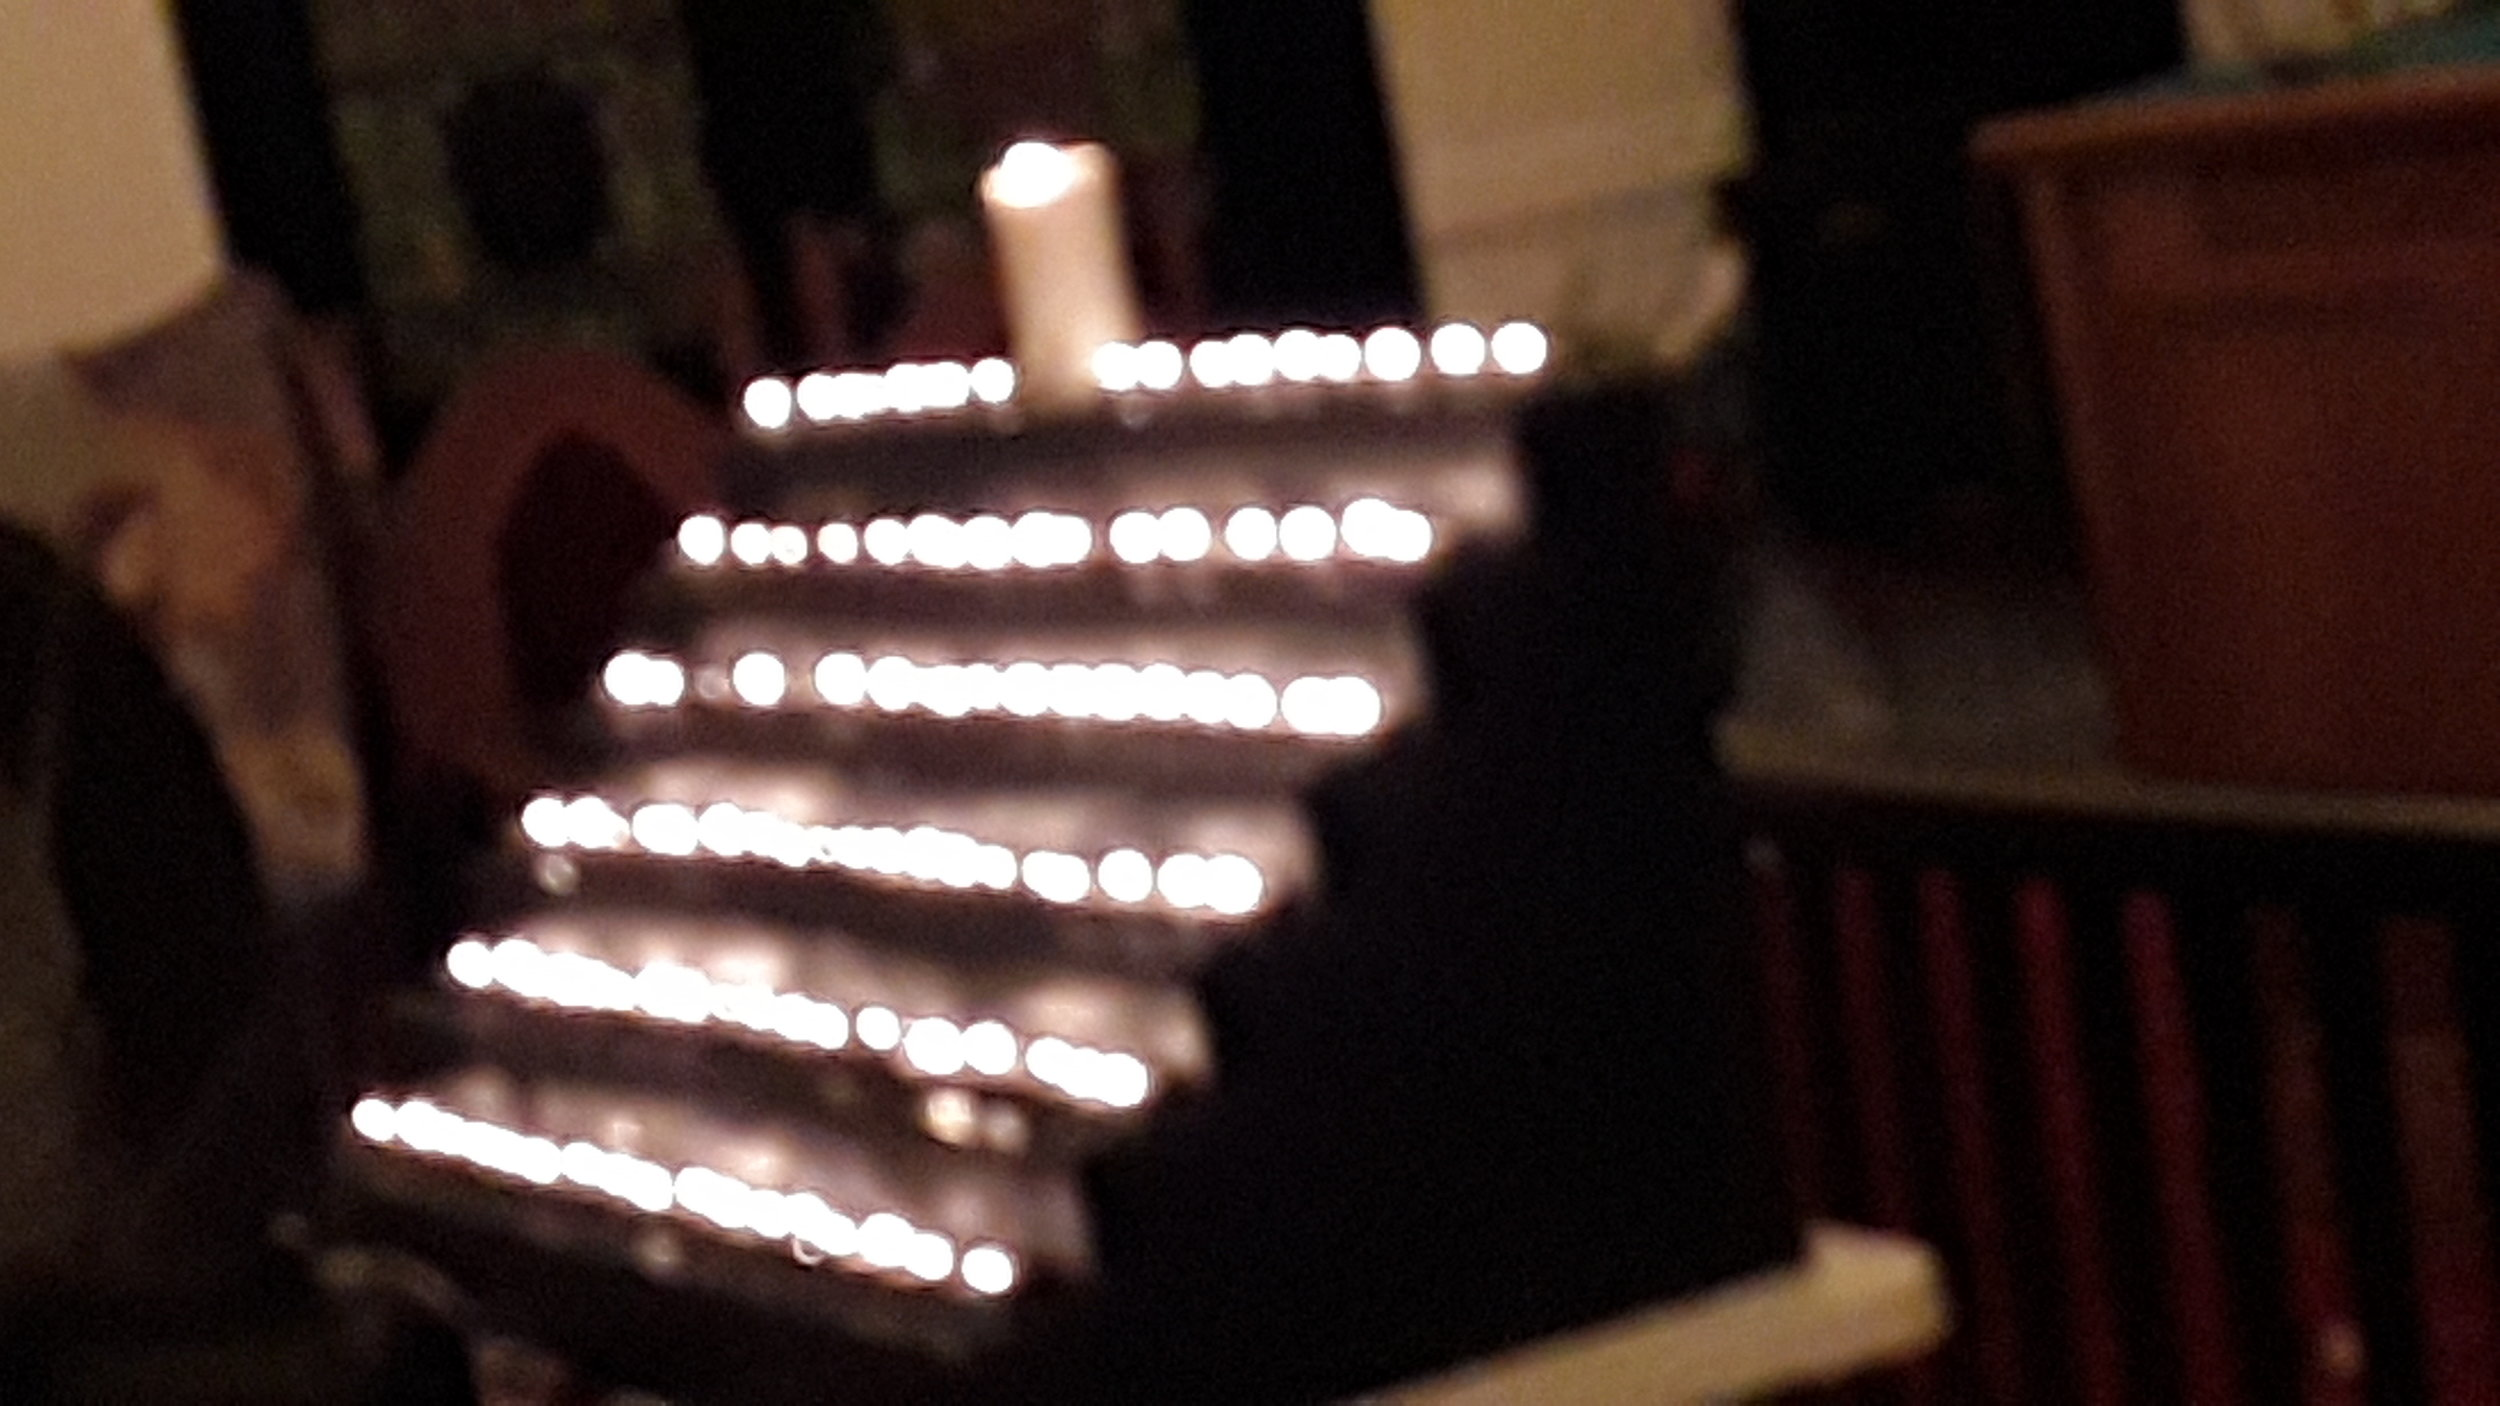 A display of several dozen lit candles.